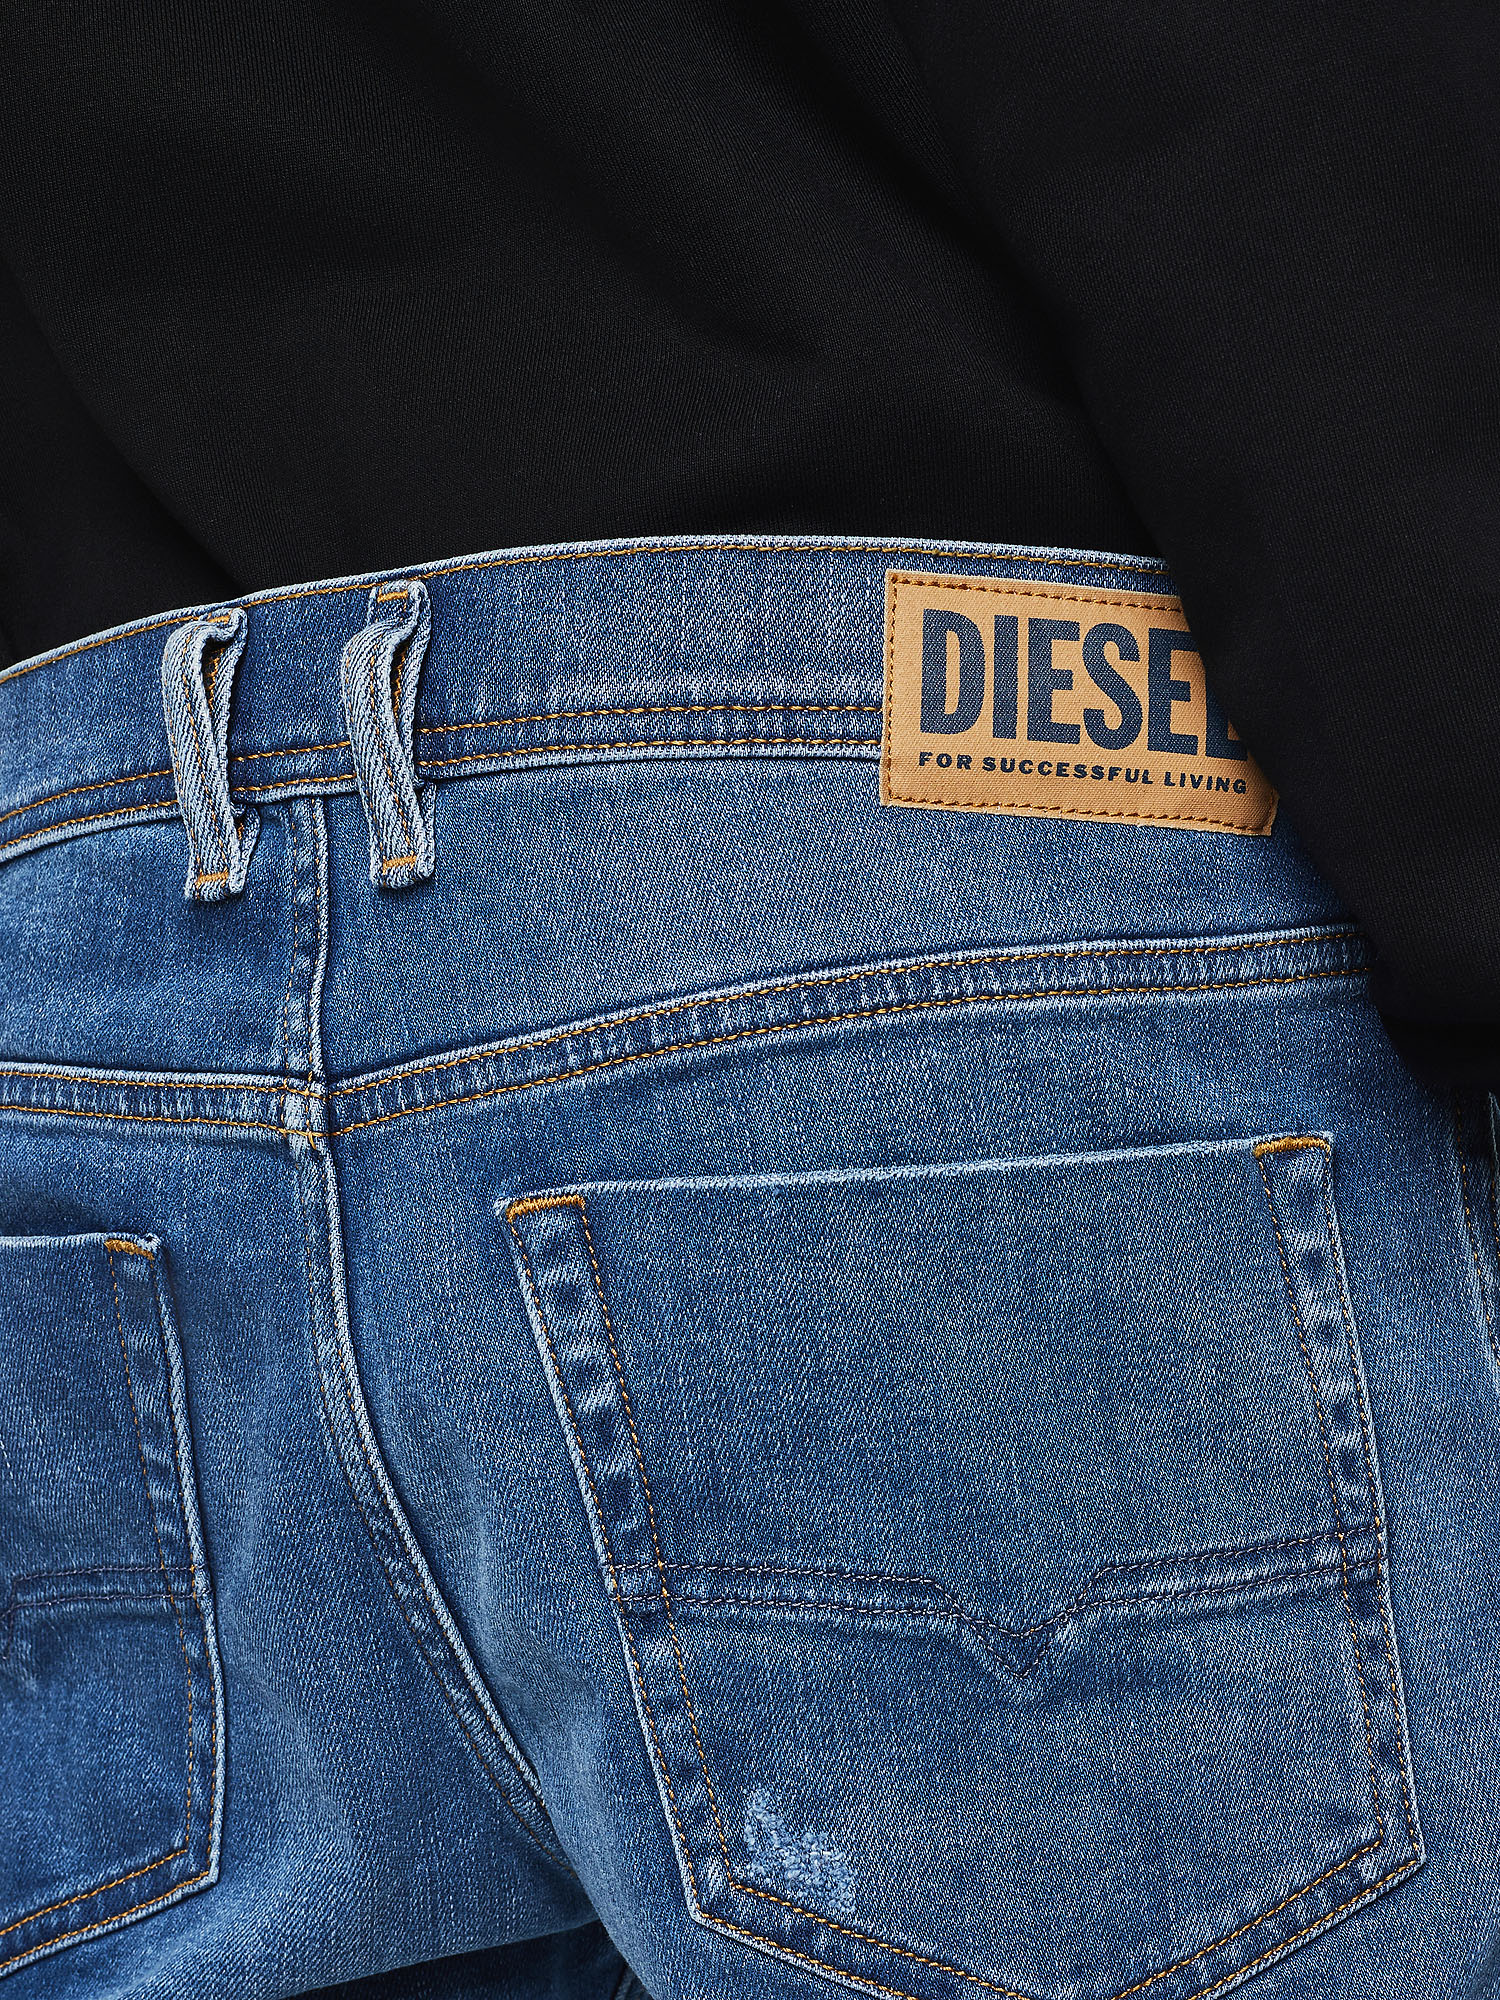 Diesel - Tepphar 083AX,  - Jeans - Image 4